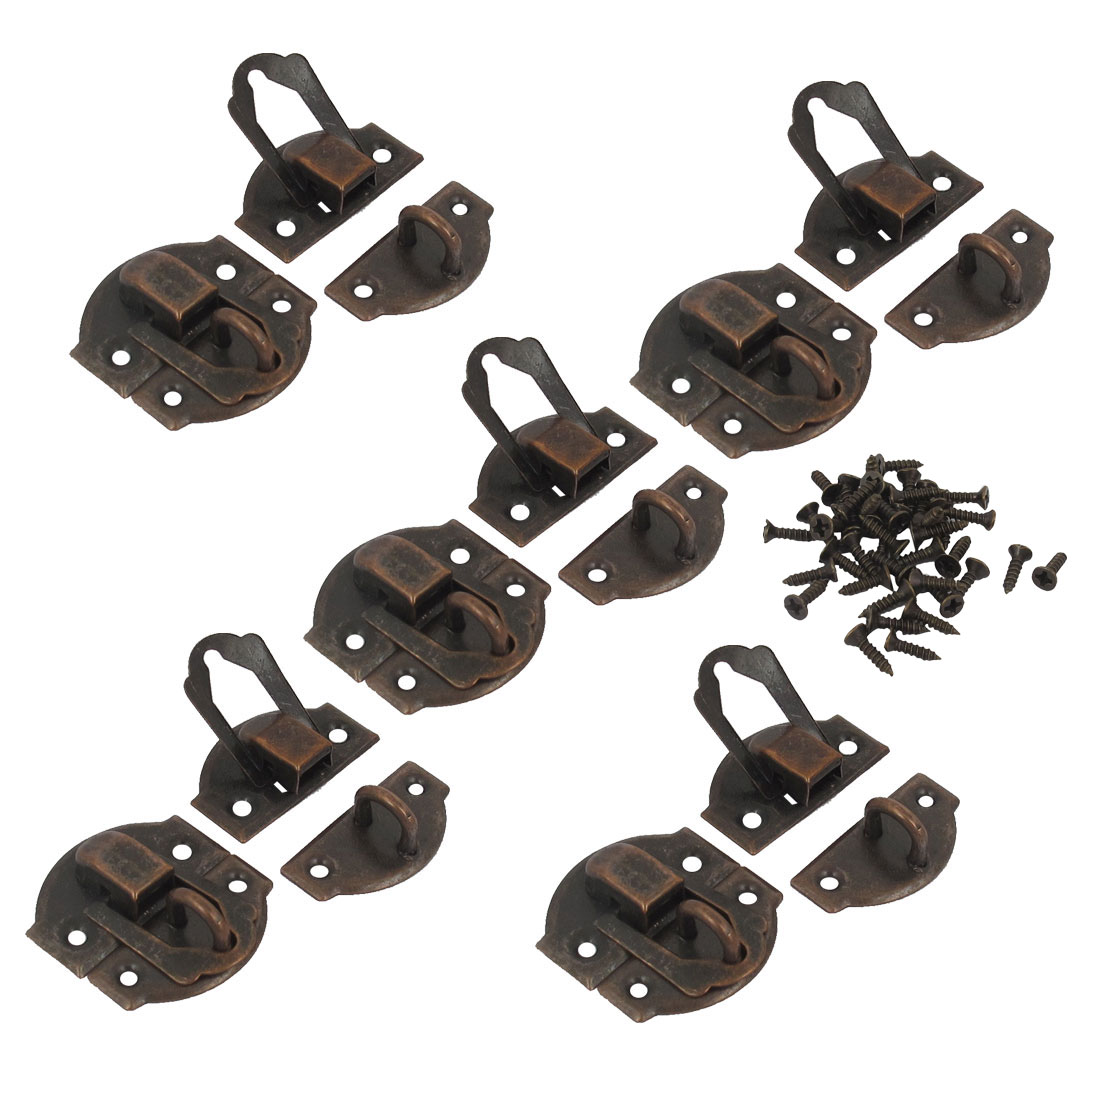 10 Pcs Vintage Style Wood Jewelry Box Latch Sets Case Hasp Lock Hook Bronze Tone w Screws